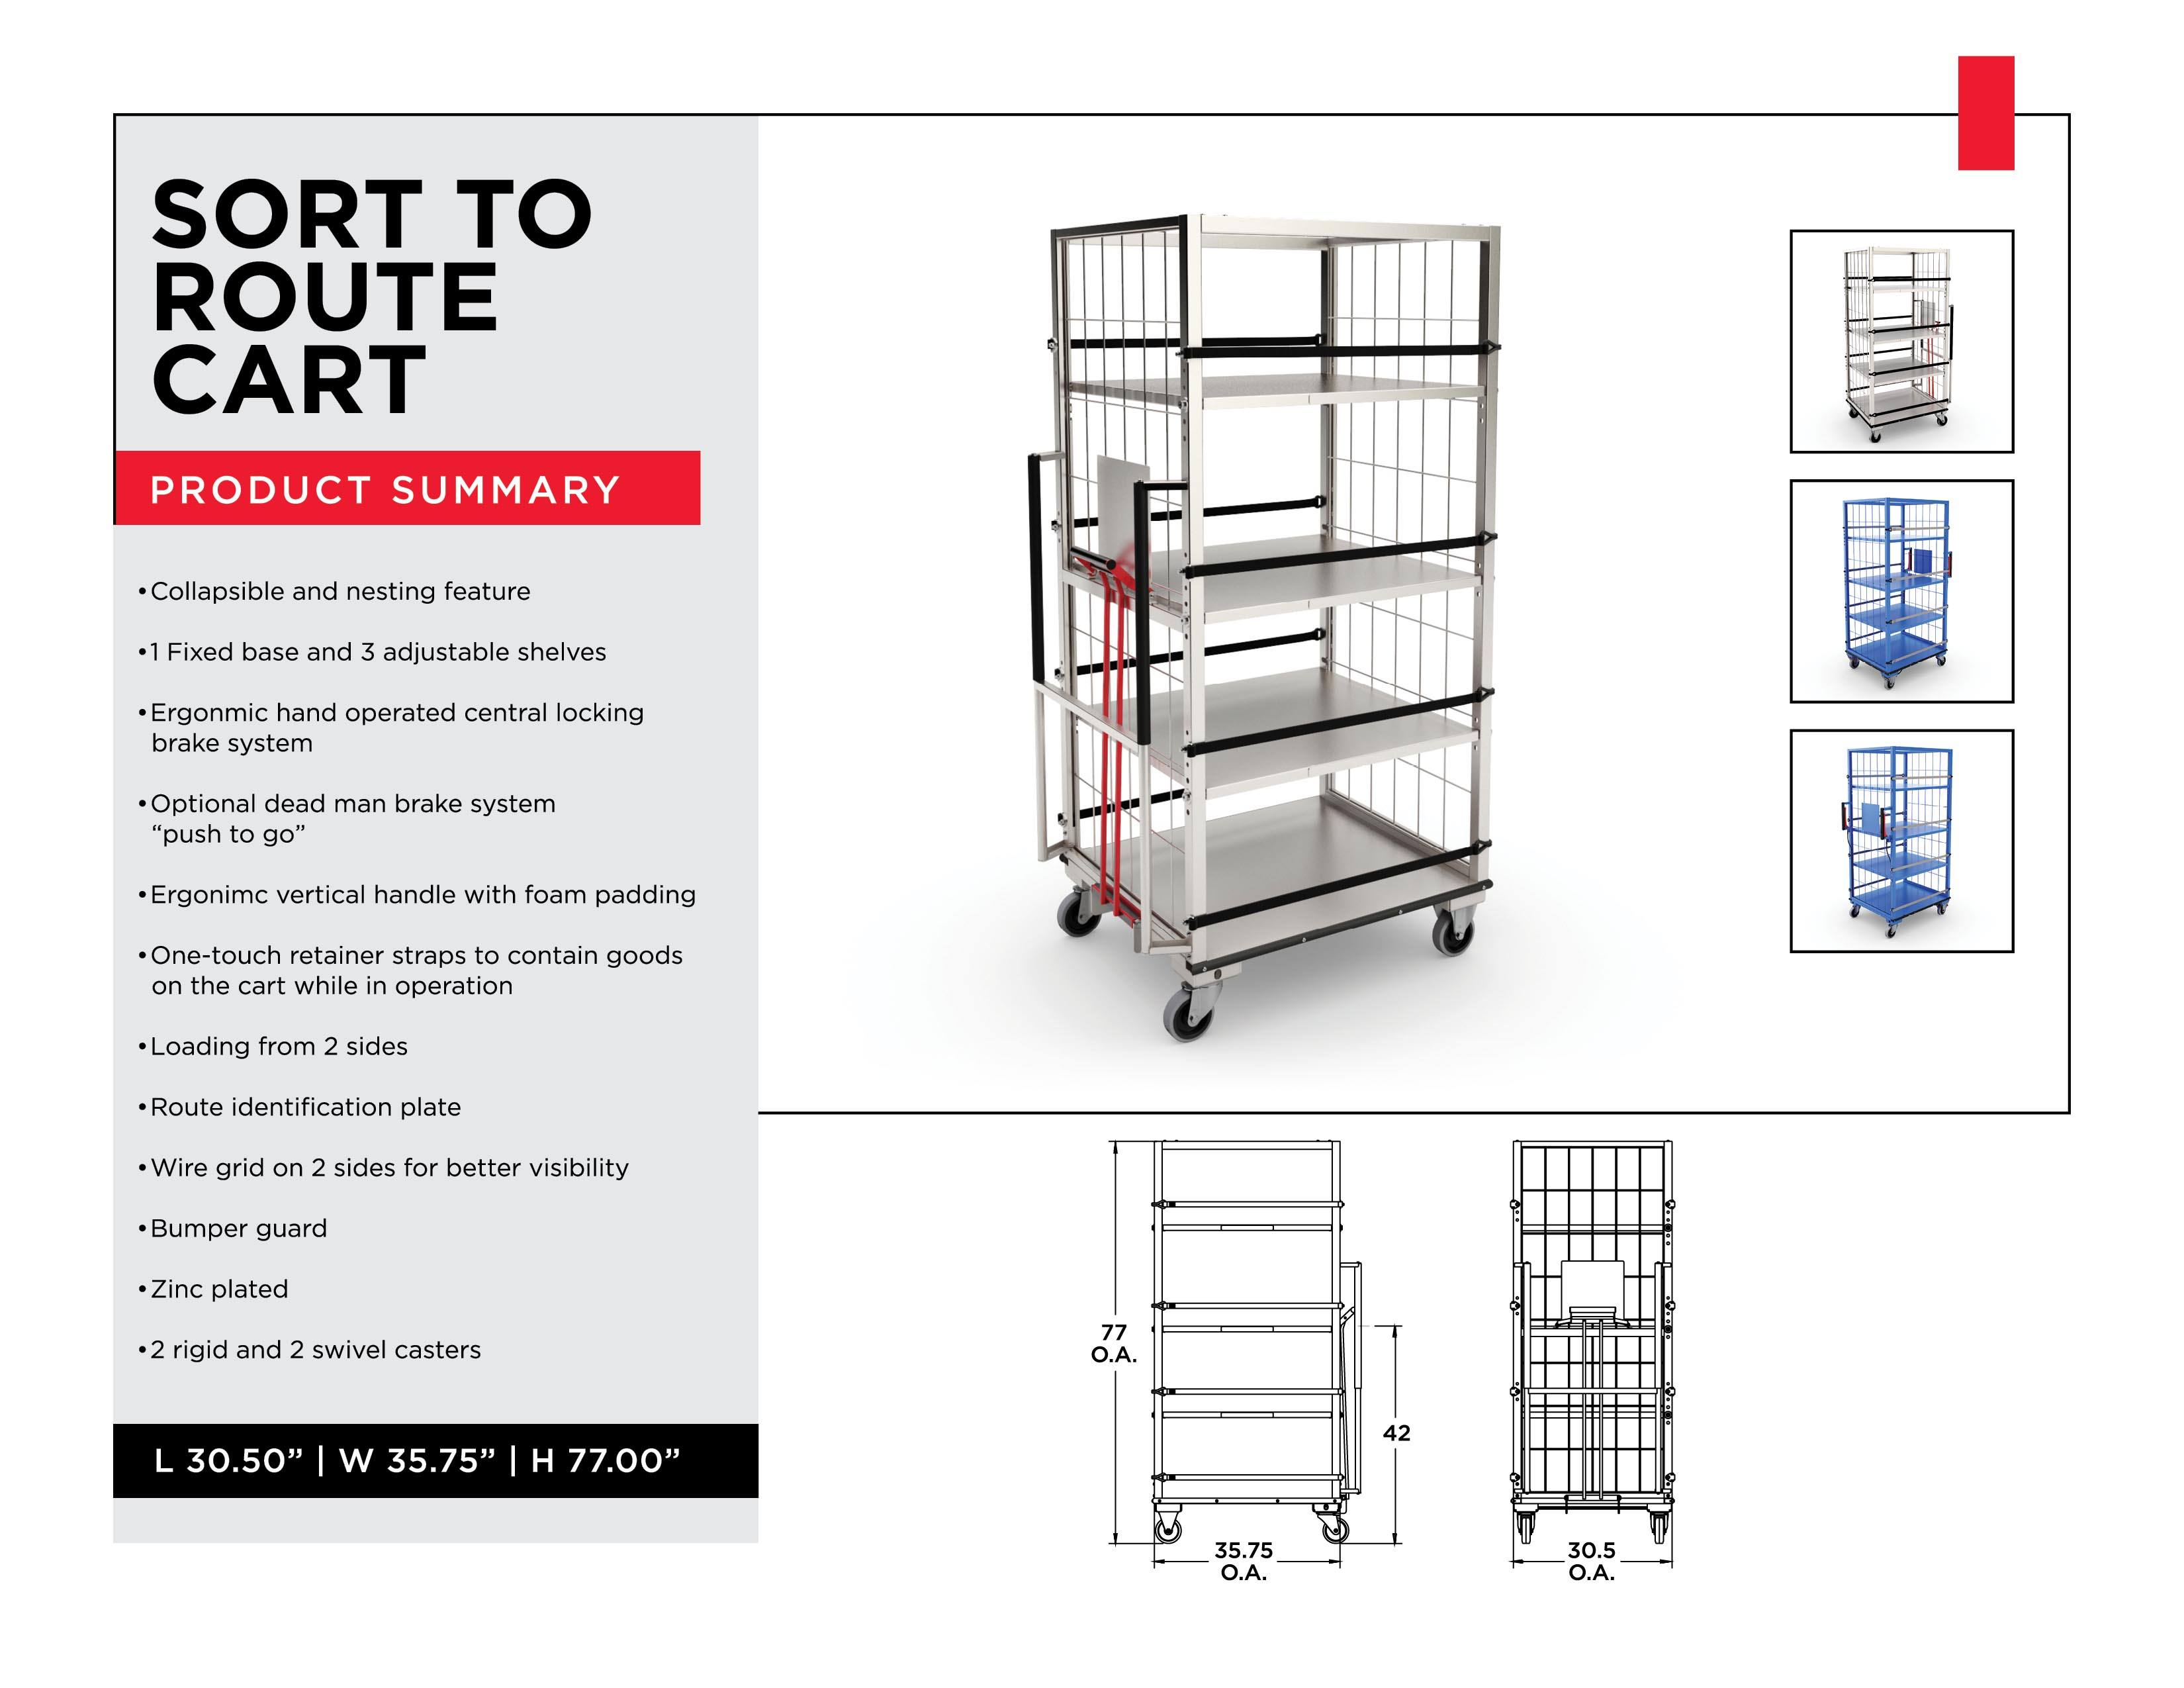 Inventory Distribution Mangement: Sort To Route Cart